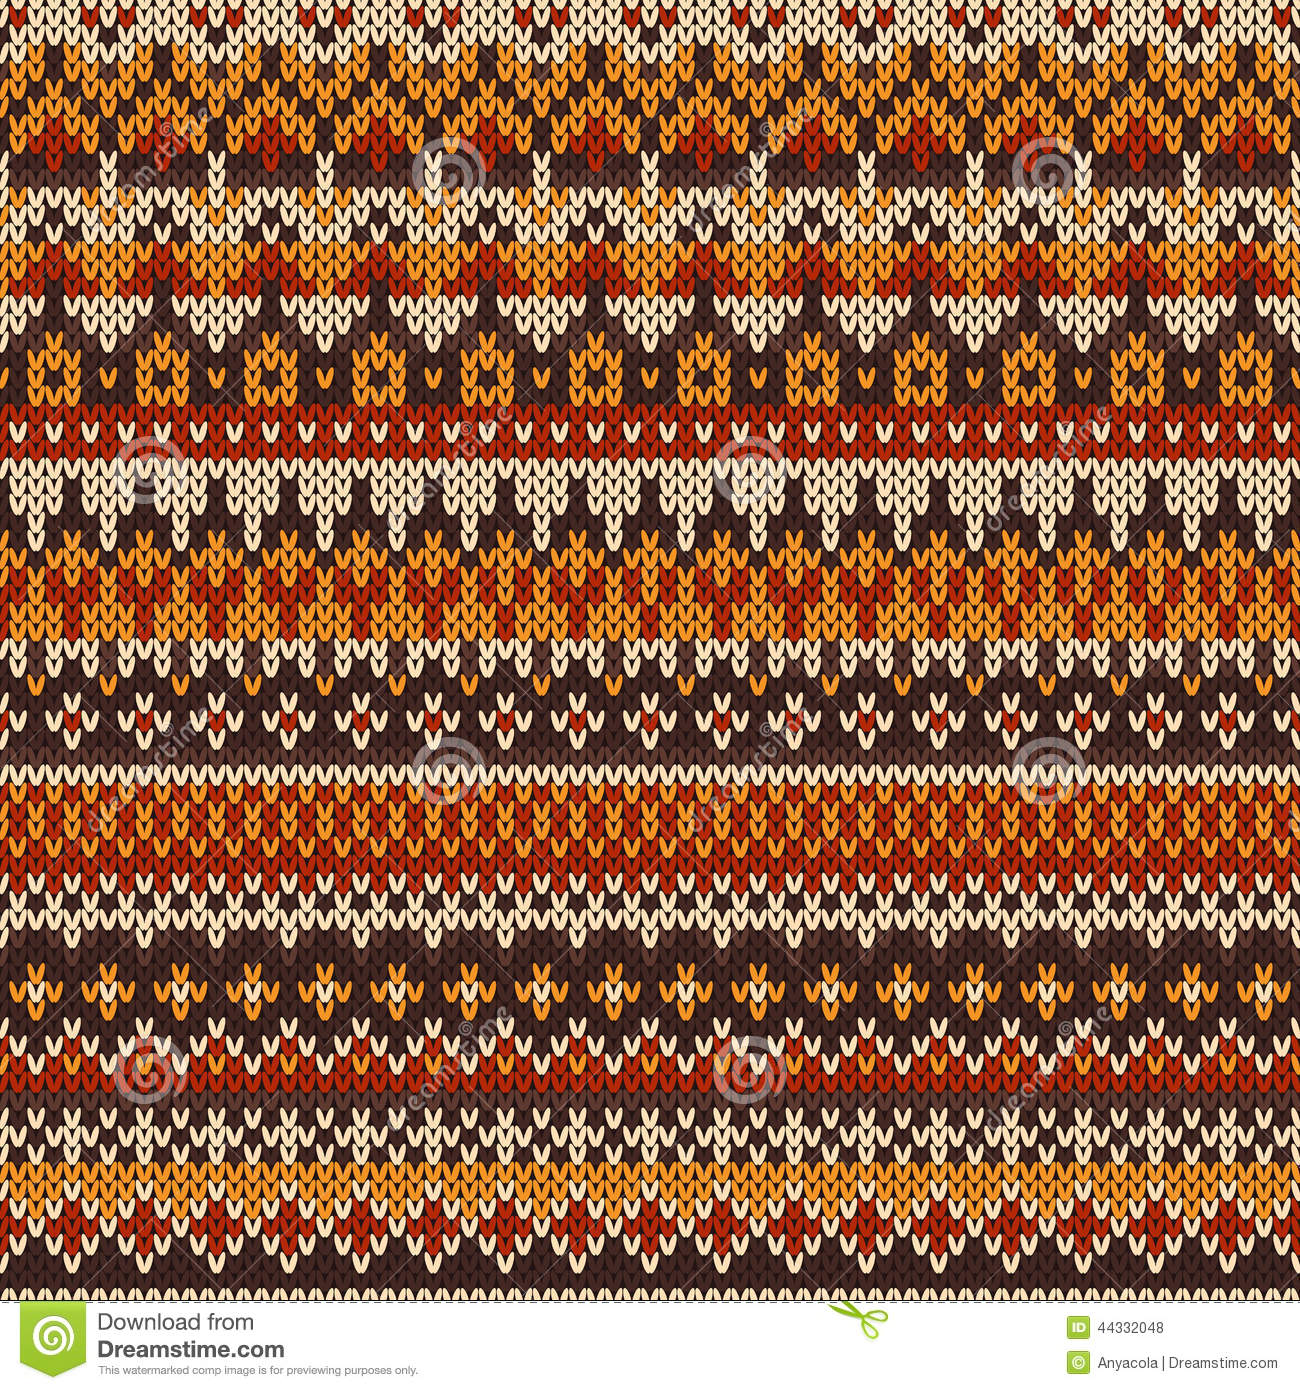 Free Baby Knitting Patterns For Blankets : Seamless Knitted Pattern In Fair Isle Style Stock Vector - Image: 44332048